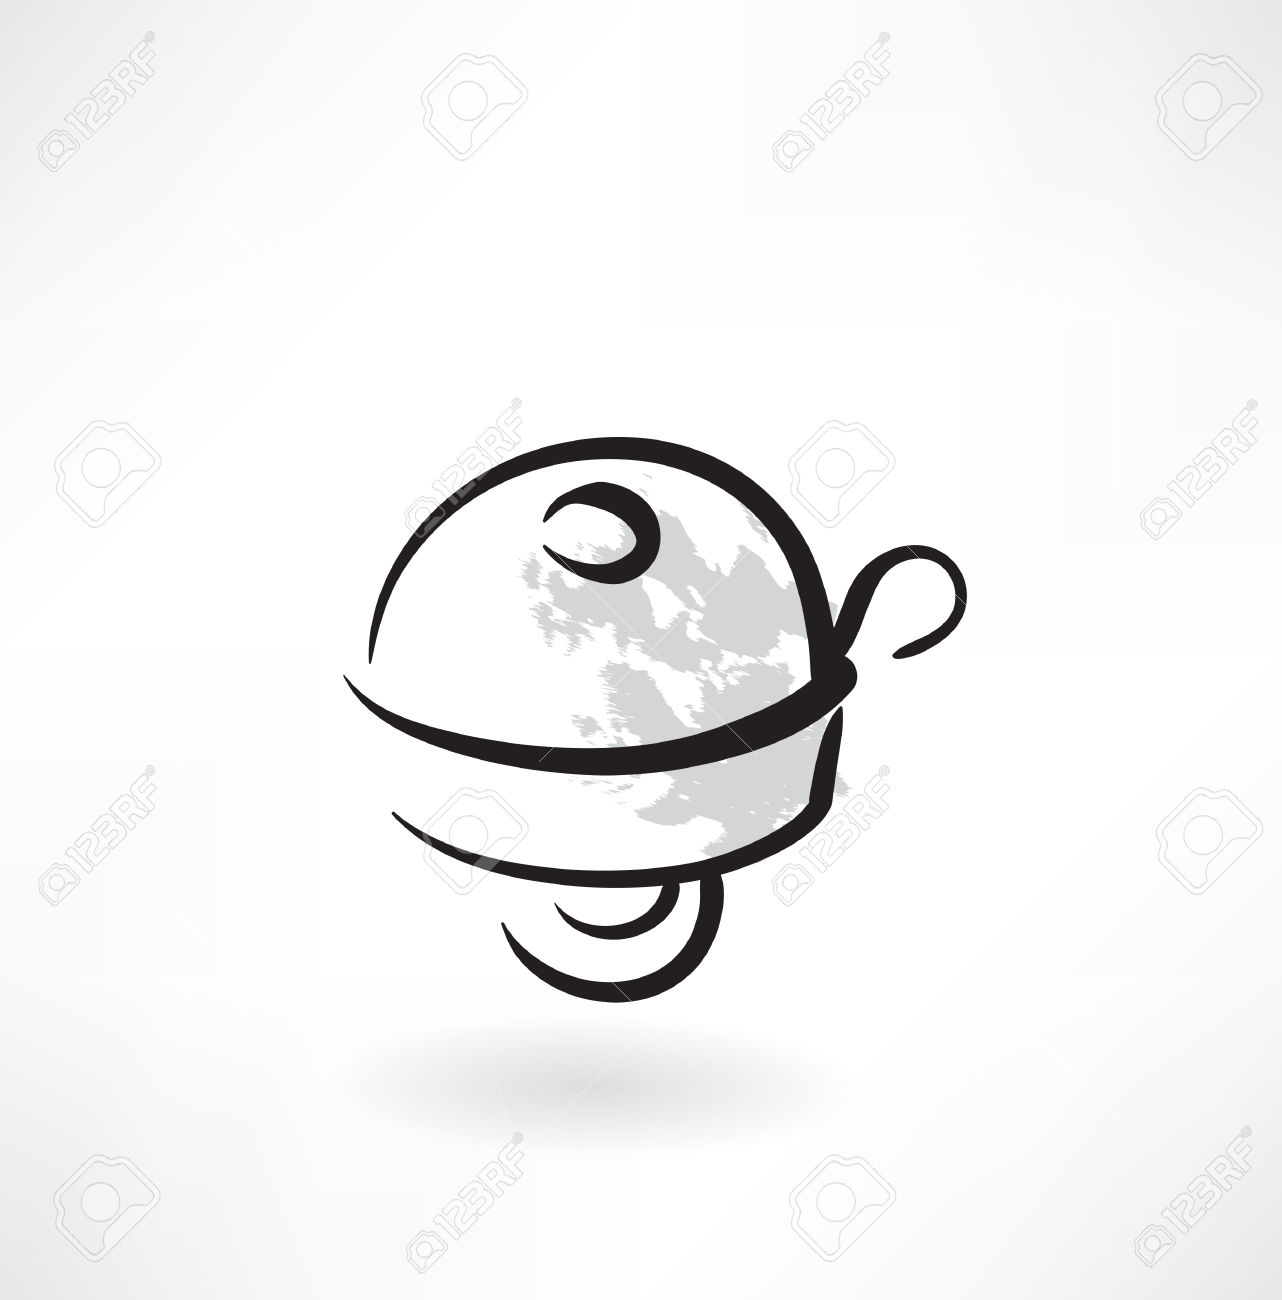 Bicycle Bell Grunge Icon Royalty Free Cliparts, Vectors, And Stock.